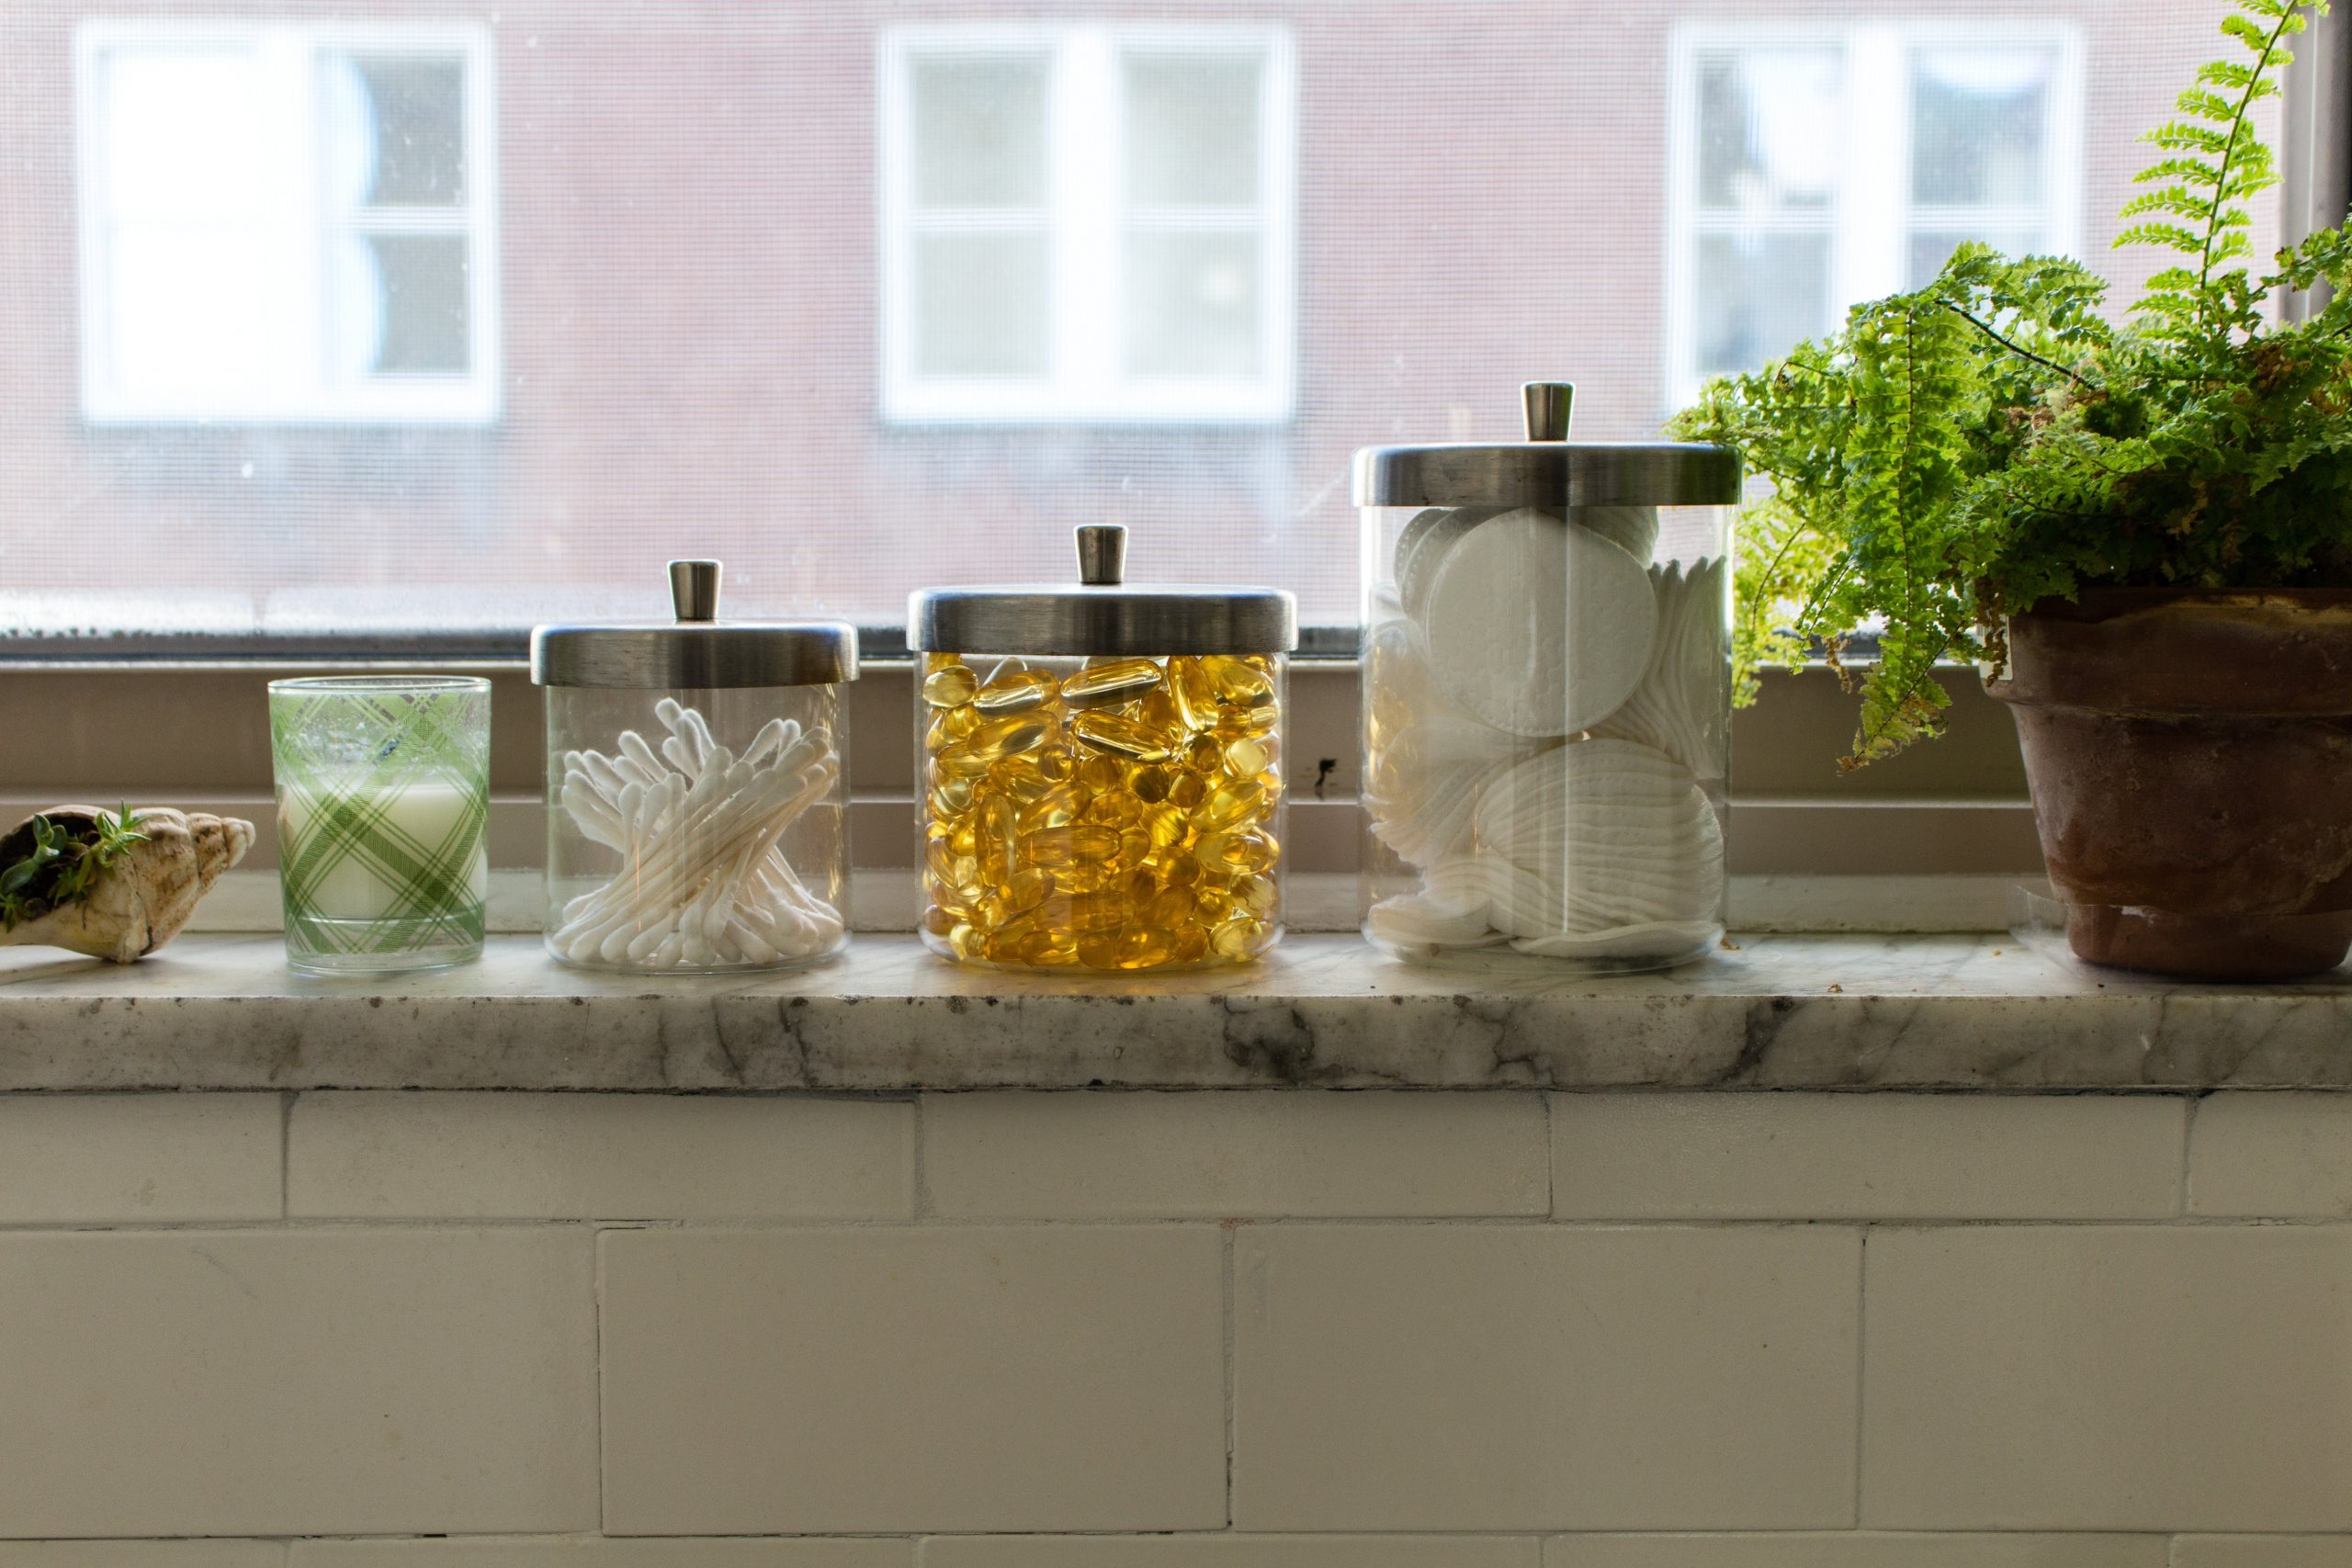 Use Your Windowsills For More Storage & Usable Surface Area Ideas For Bathroom Window Sills